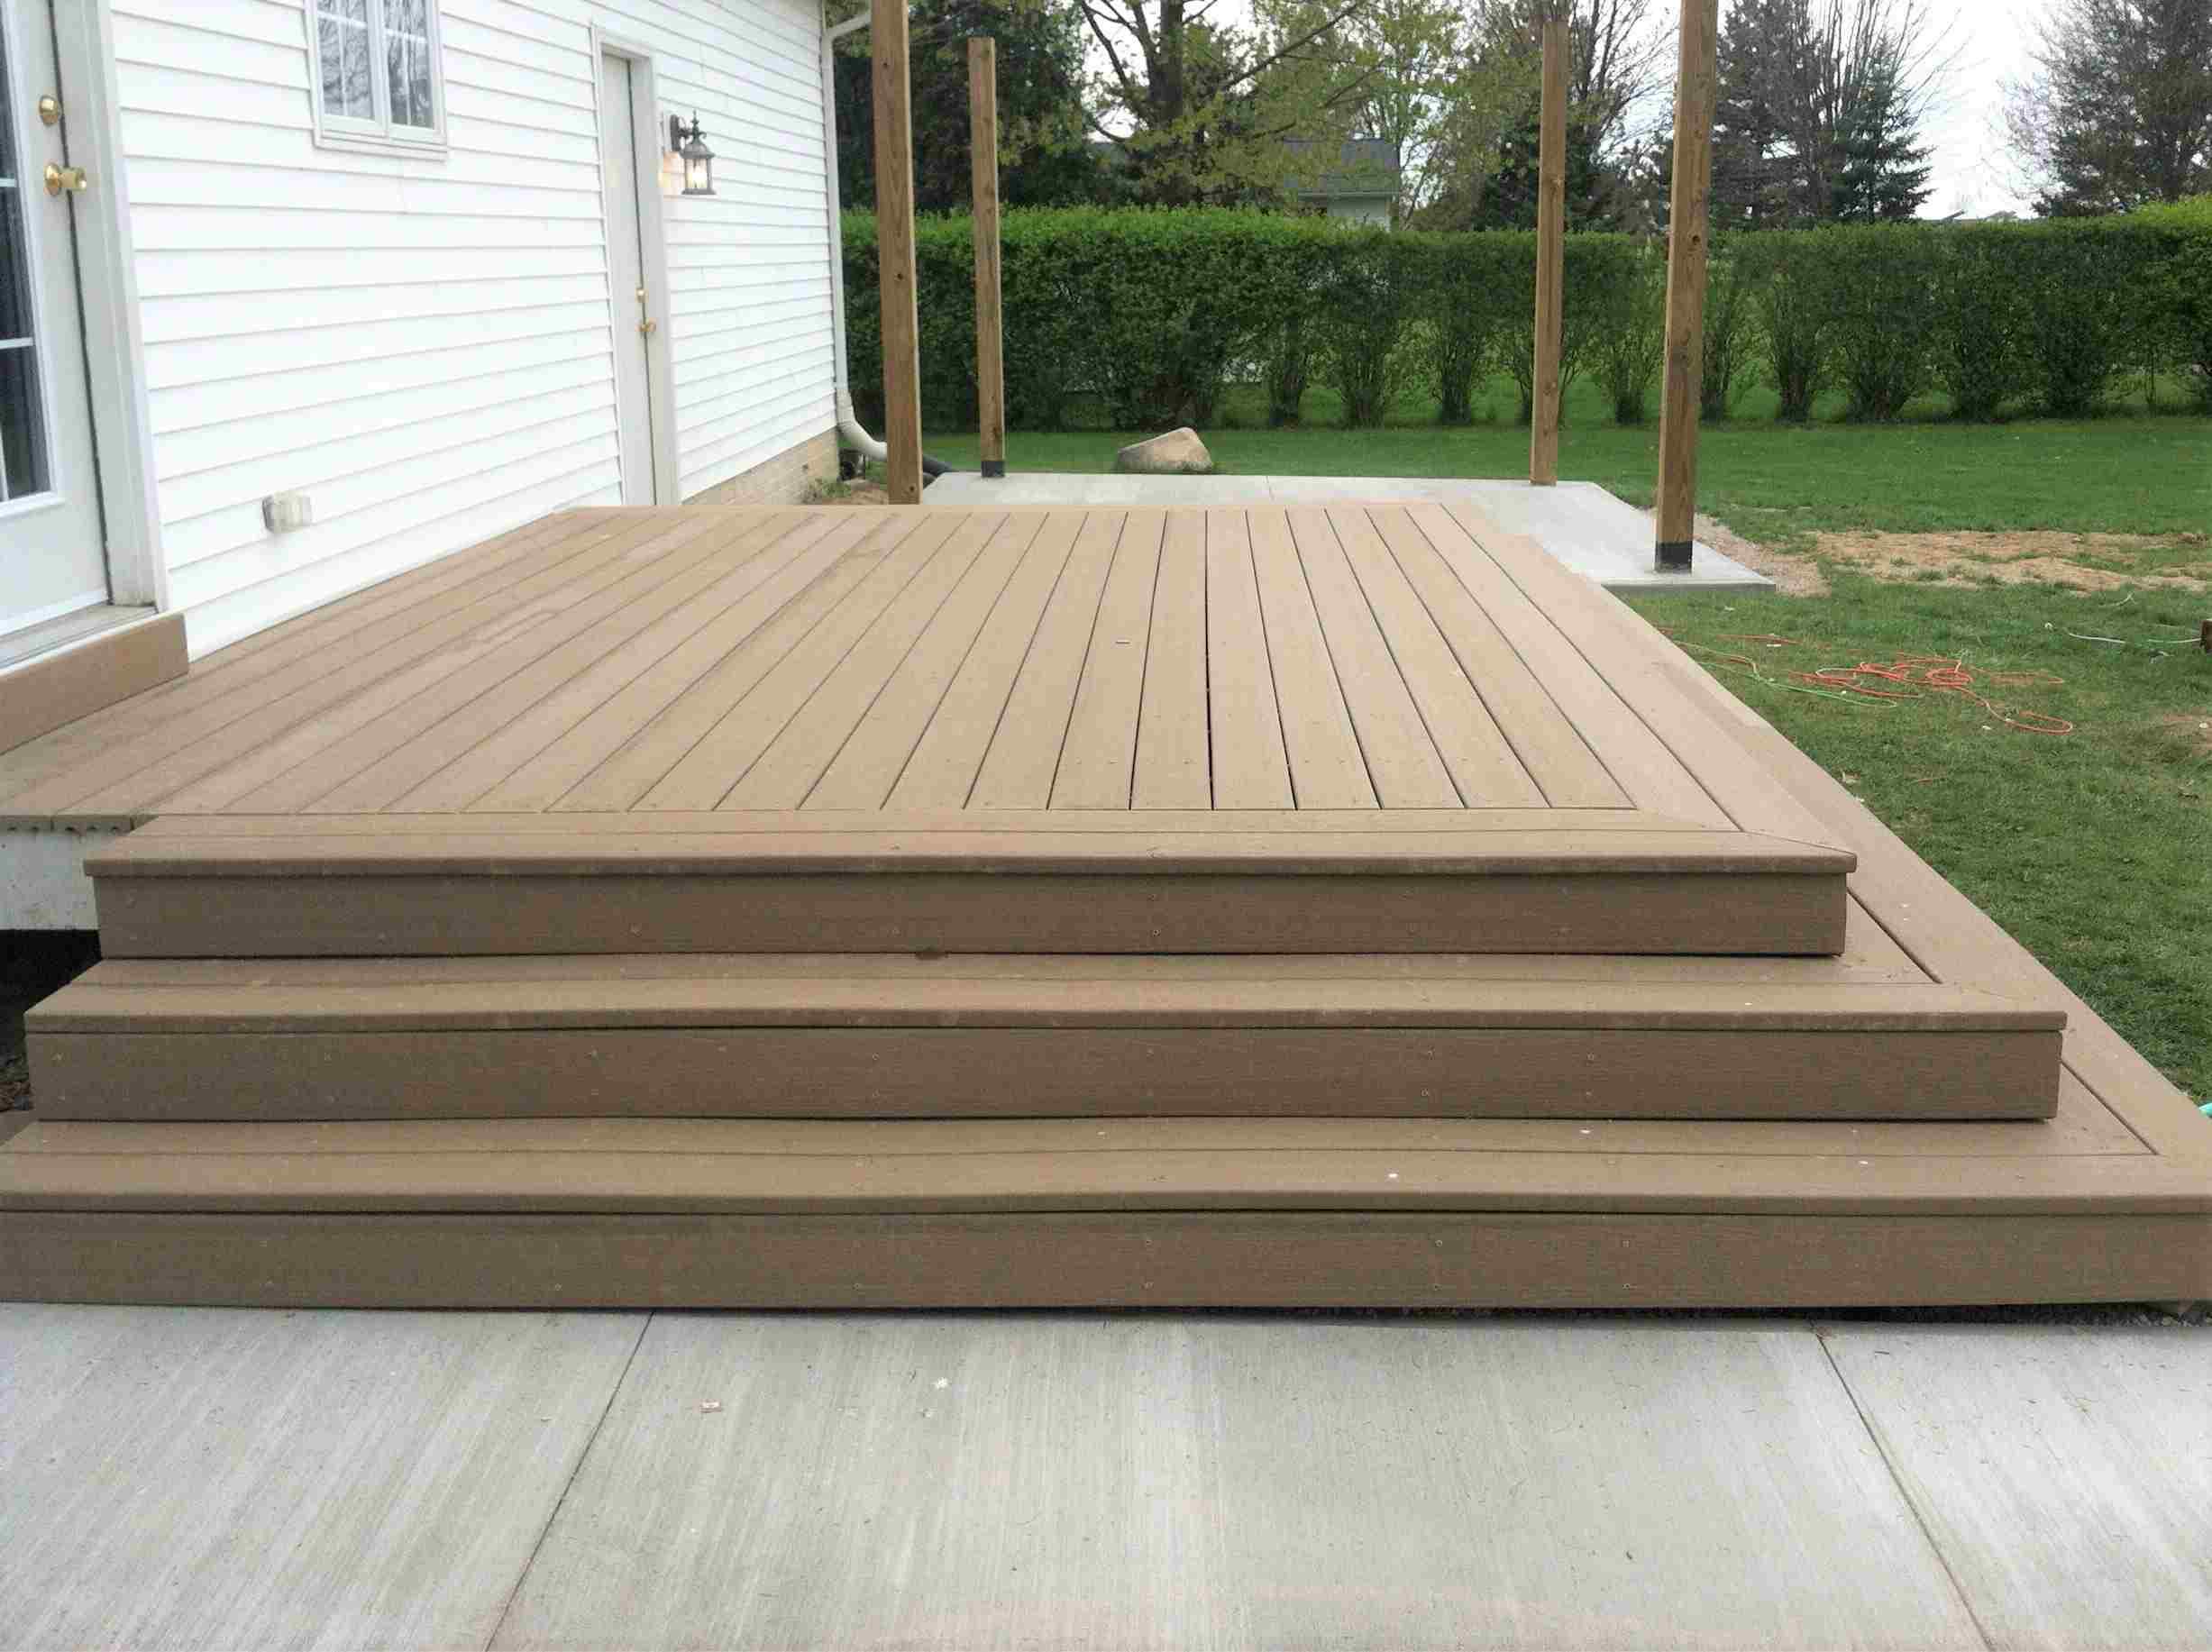 deck how use tiles floor patio decks flooring old ipe cracked tile pavers structural where concrete resurface resources easily to